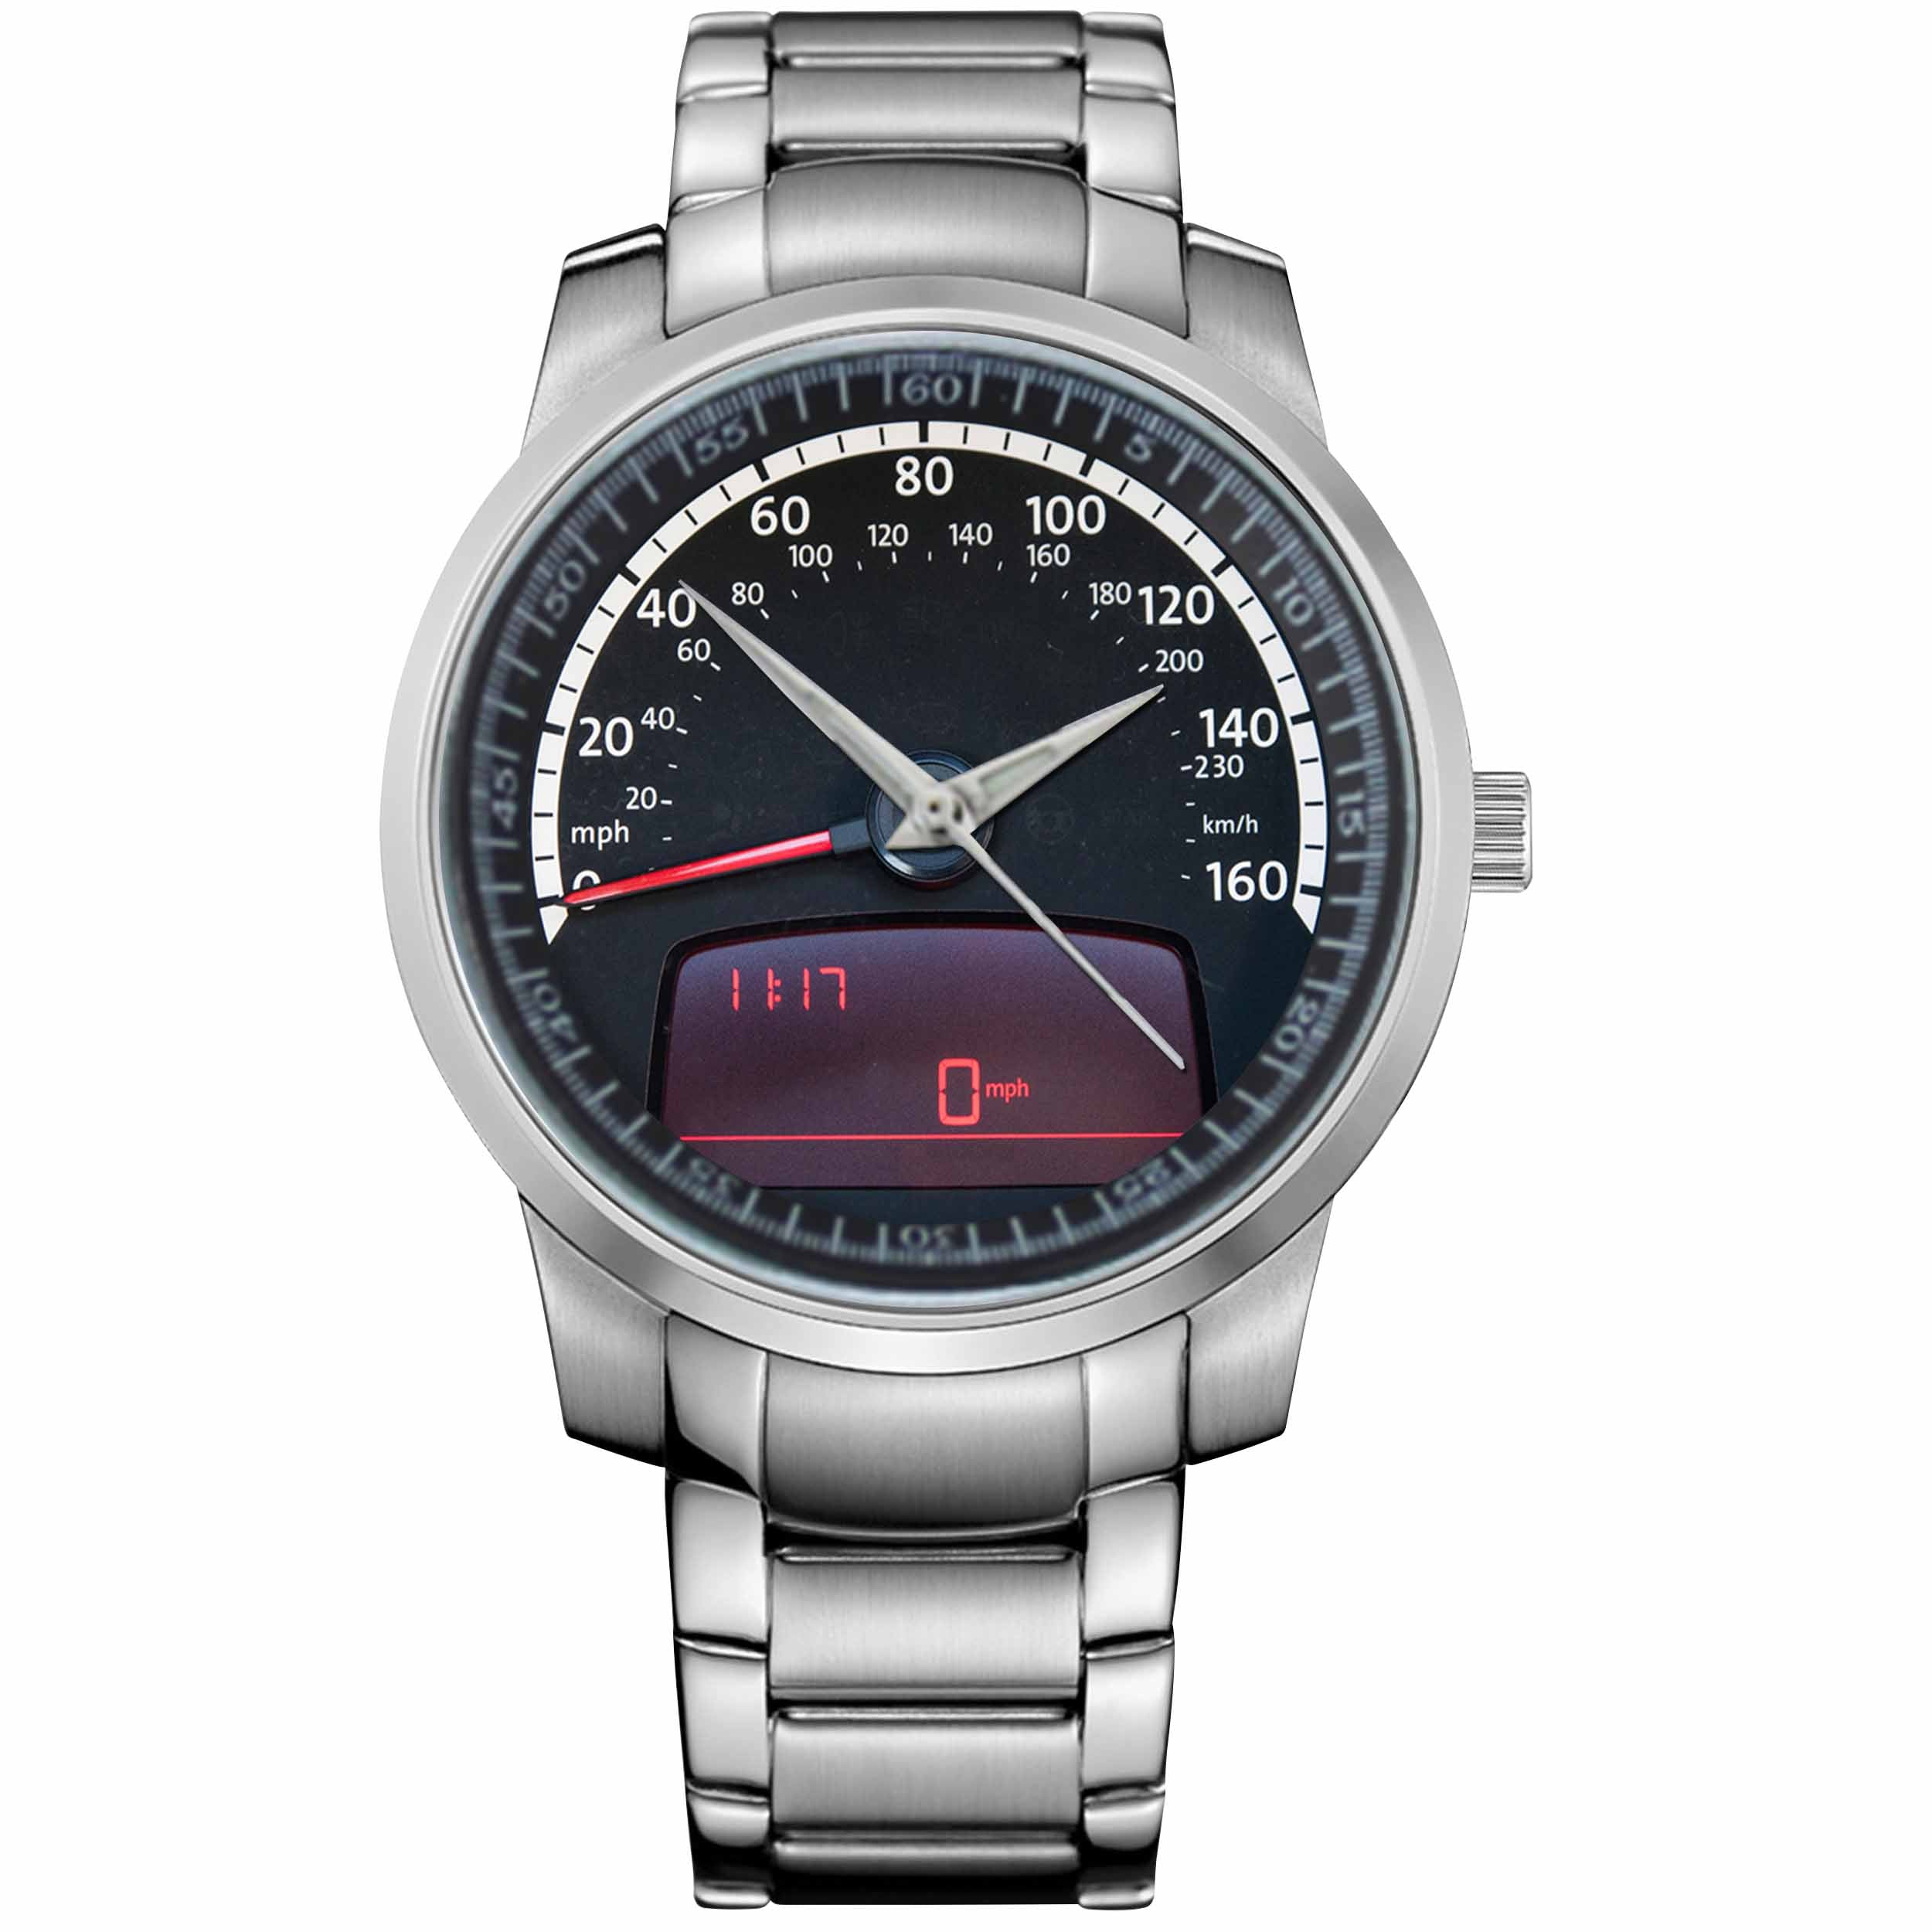 sport training first world watches garmin glonass more pin and watch adventure explore gps s